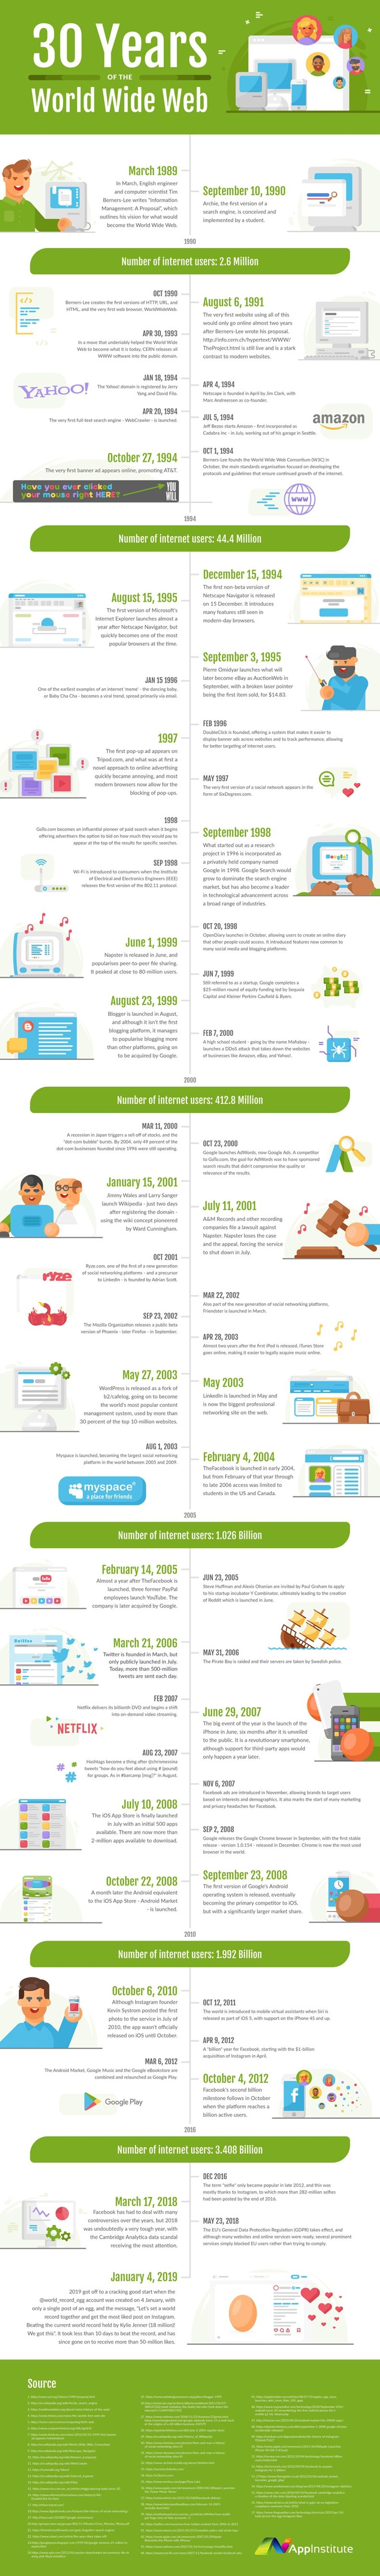 World Wide Web history timeline